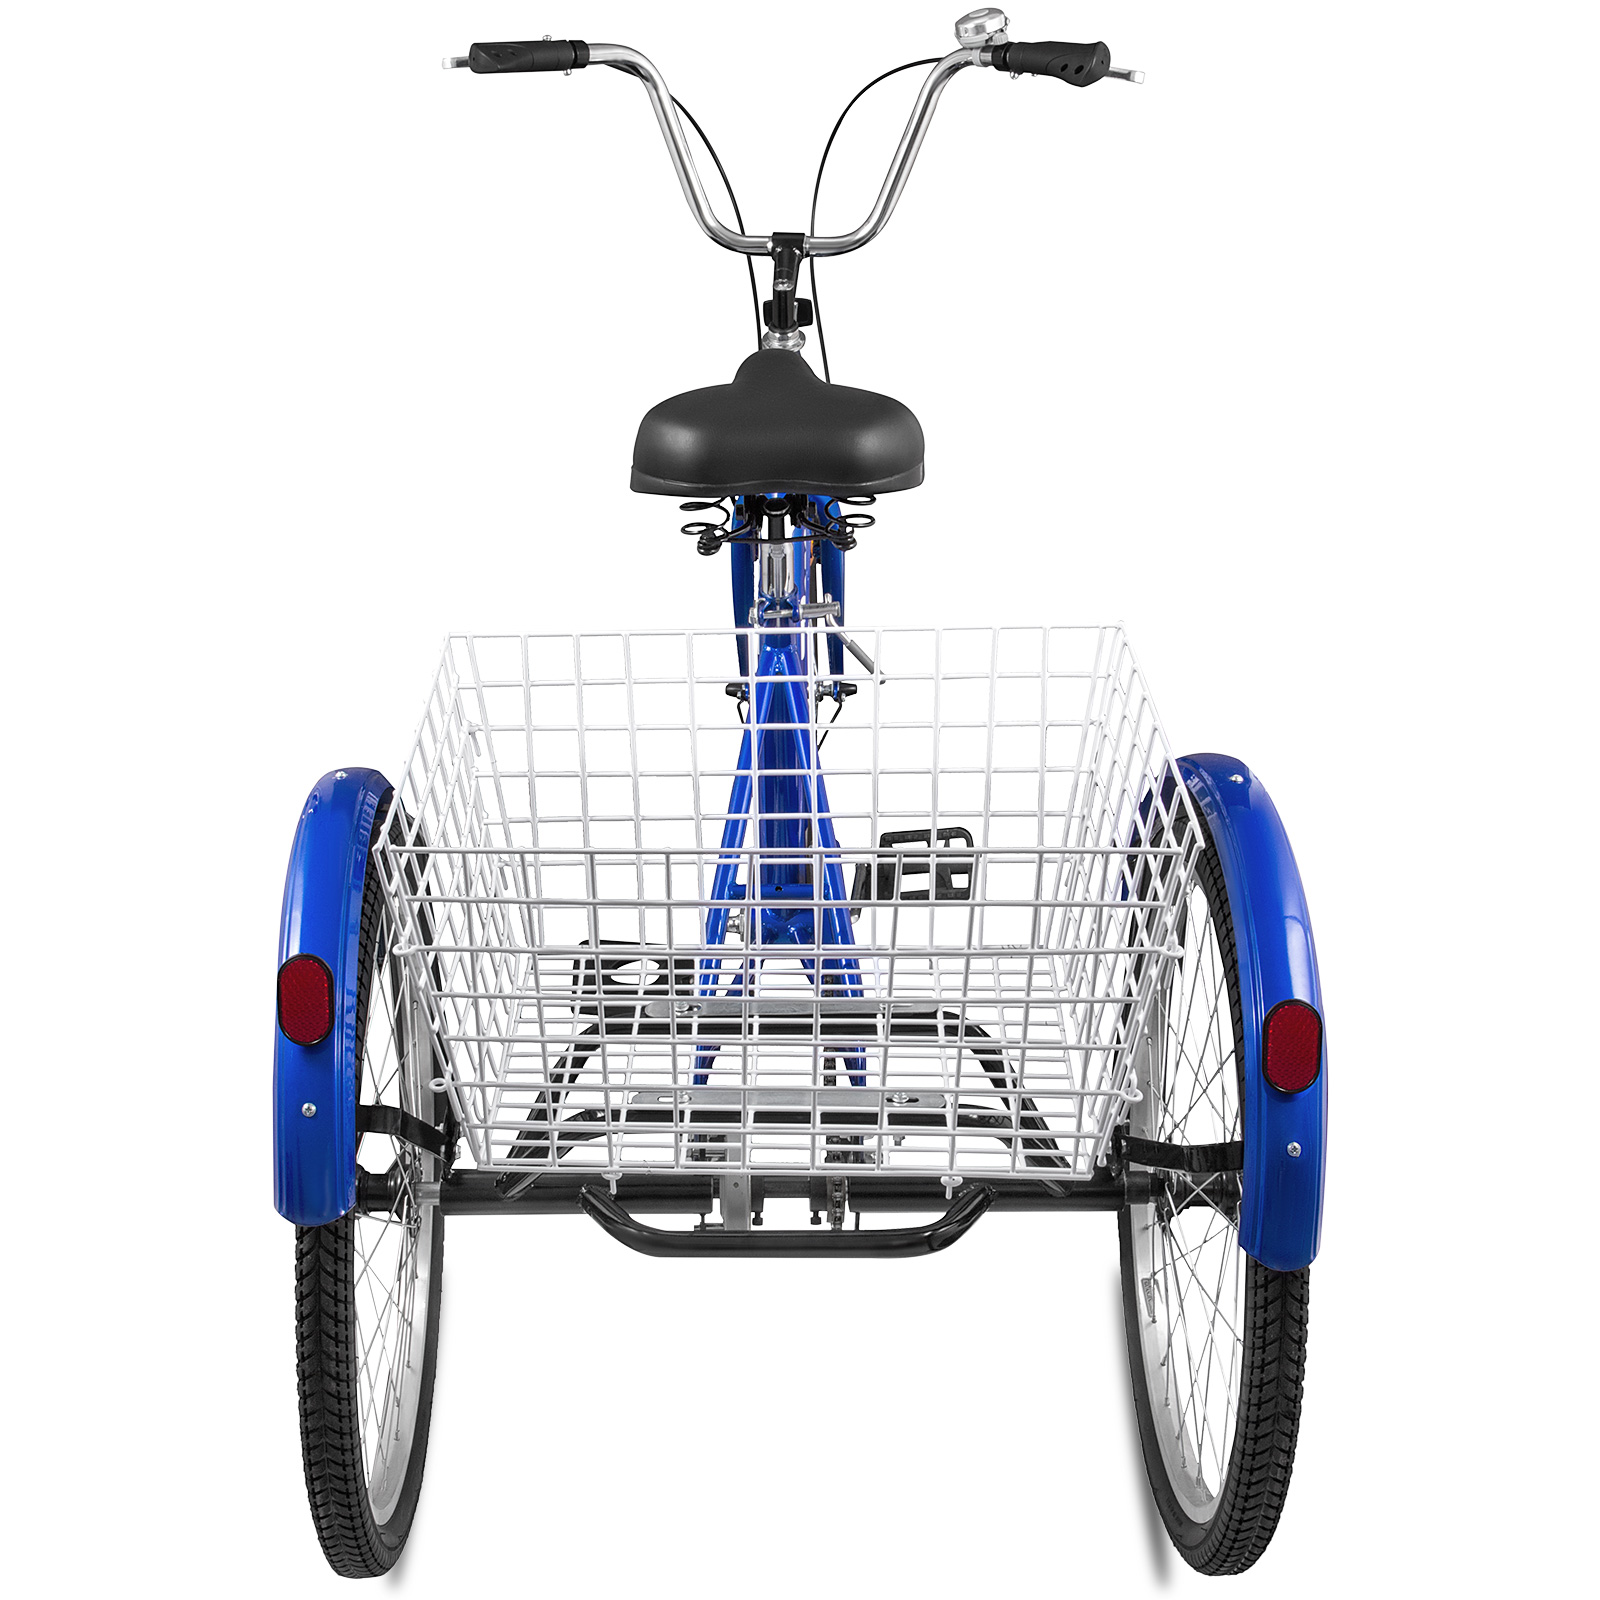 20-24-26-034-Adult-Tricycle-1-7-Speed-3-Wheel-Large-Basket-For-Shopping-Optional thumbnail 300